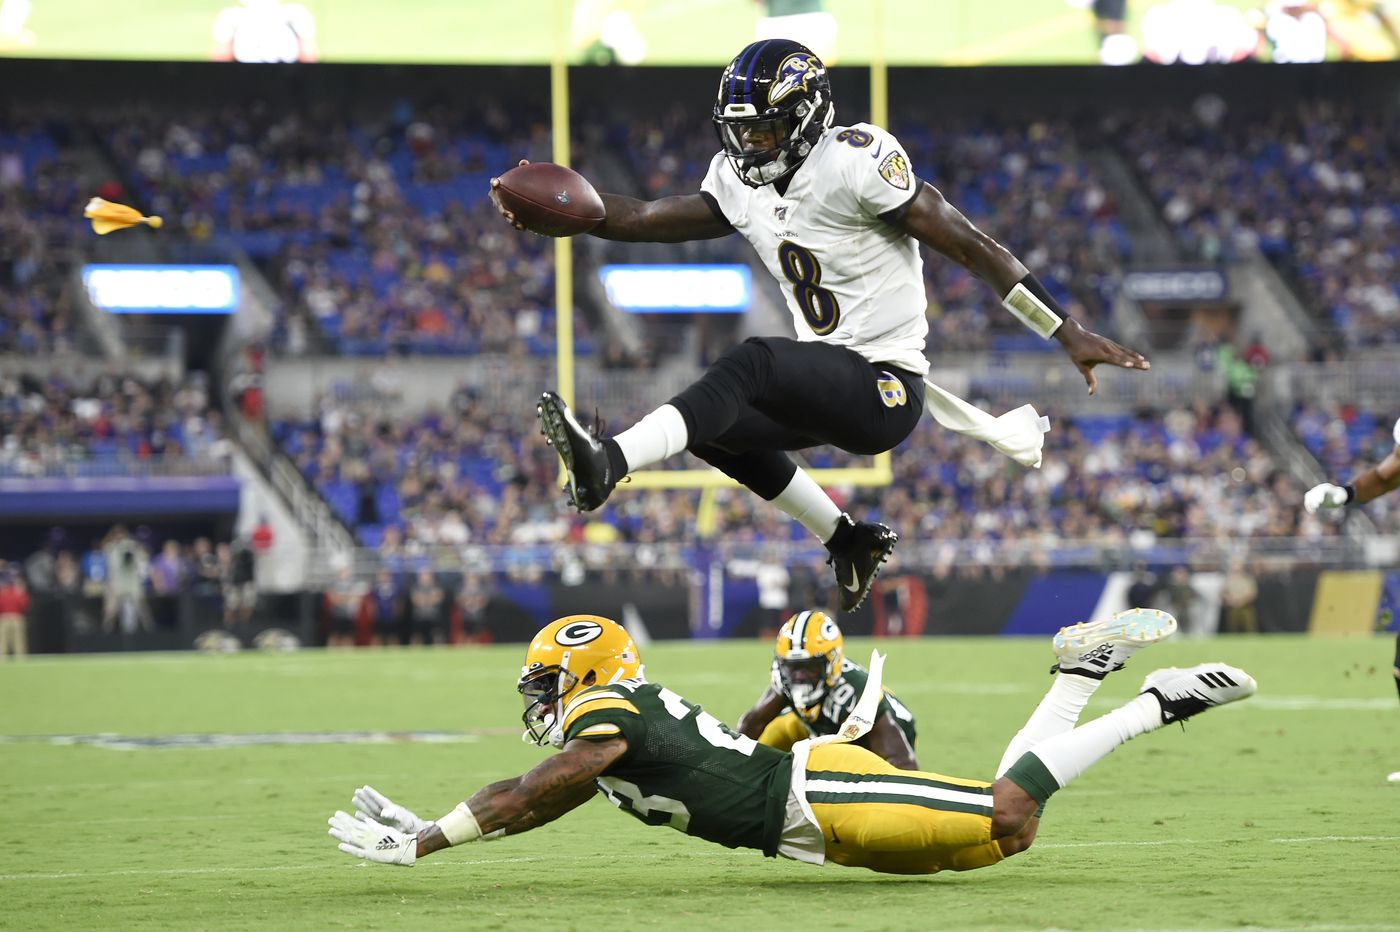 The Eagles face Lamar Jackson for the first time; here are some facts and figures, and a look at the remaining QBs on the schedule